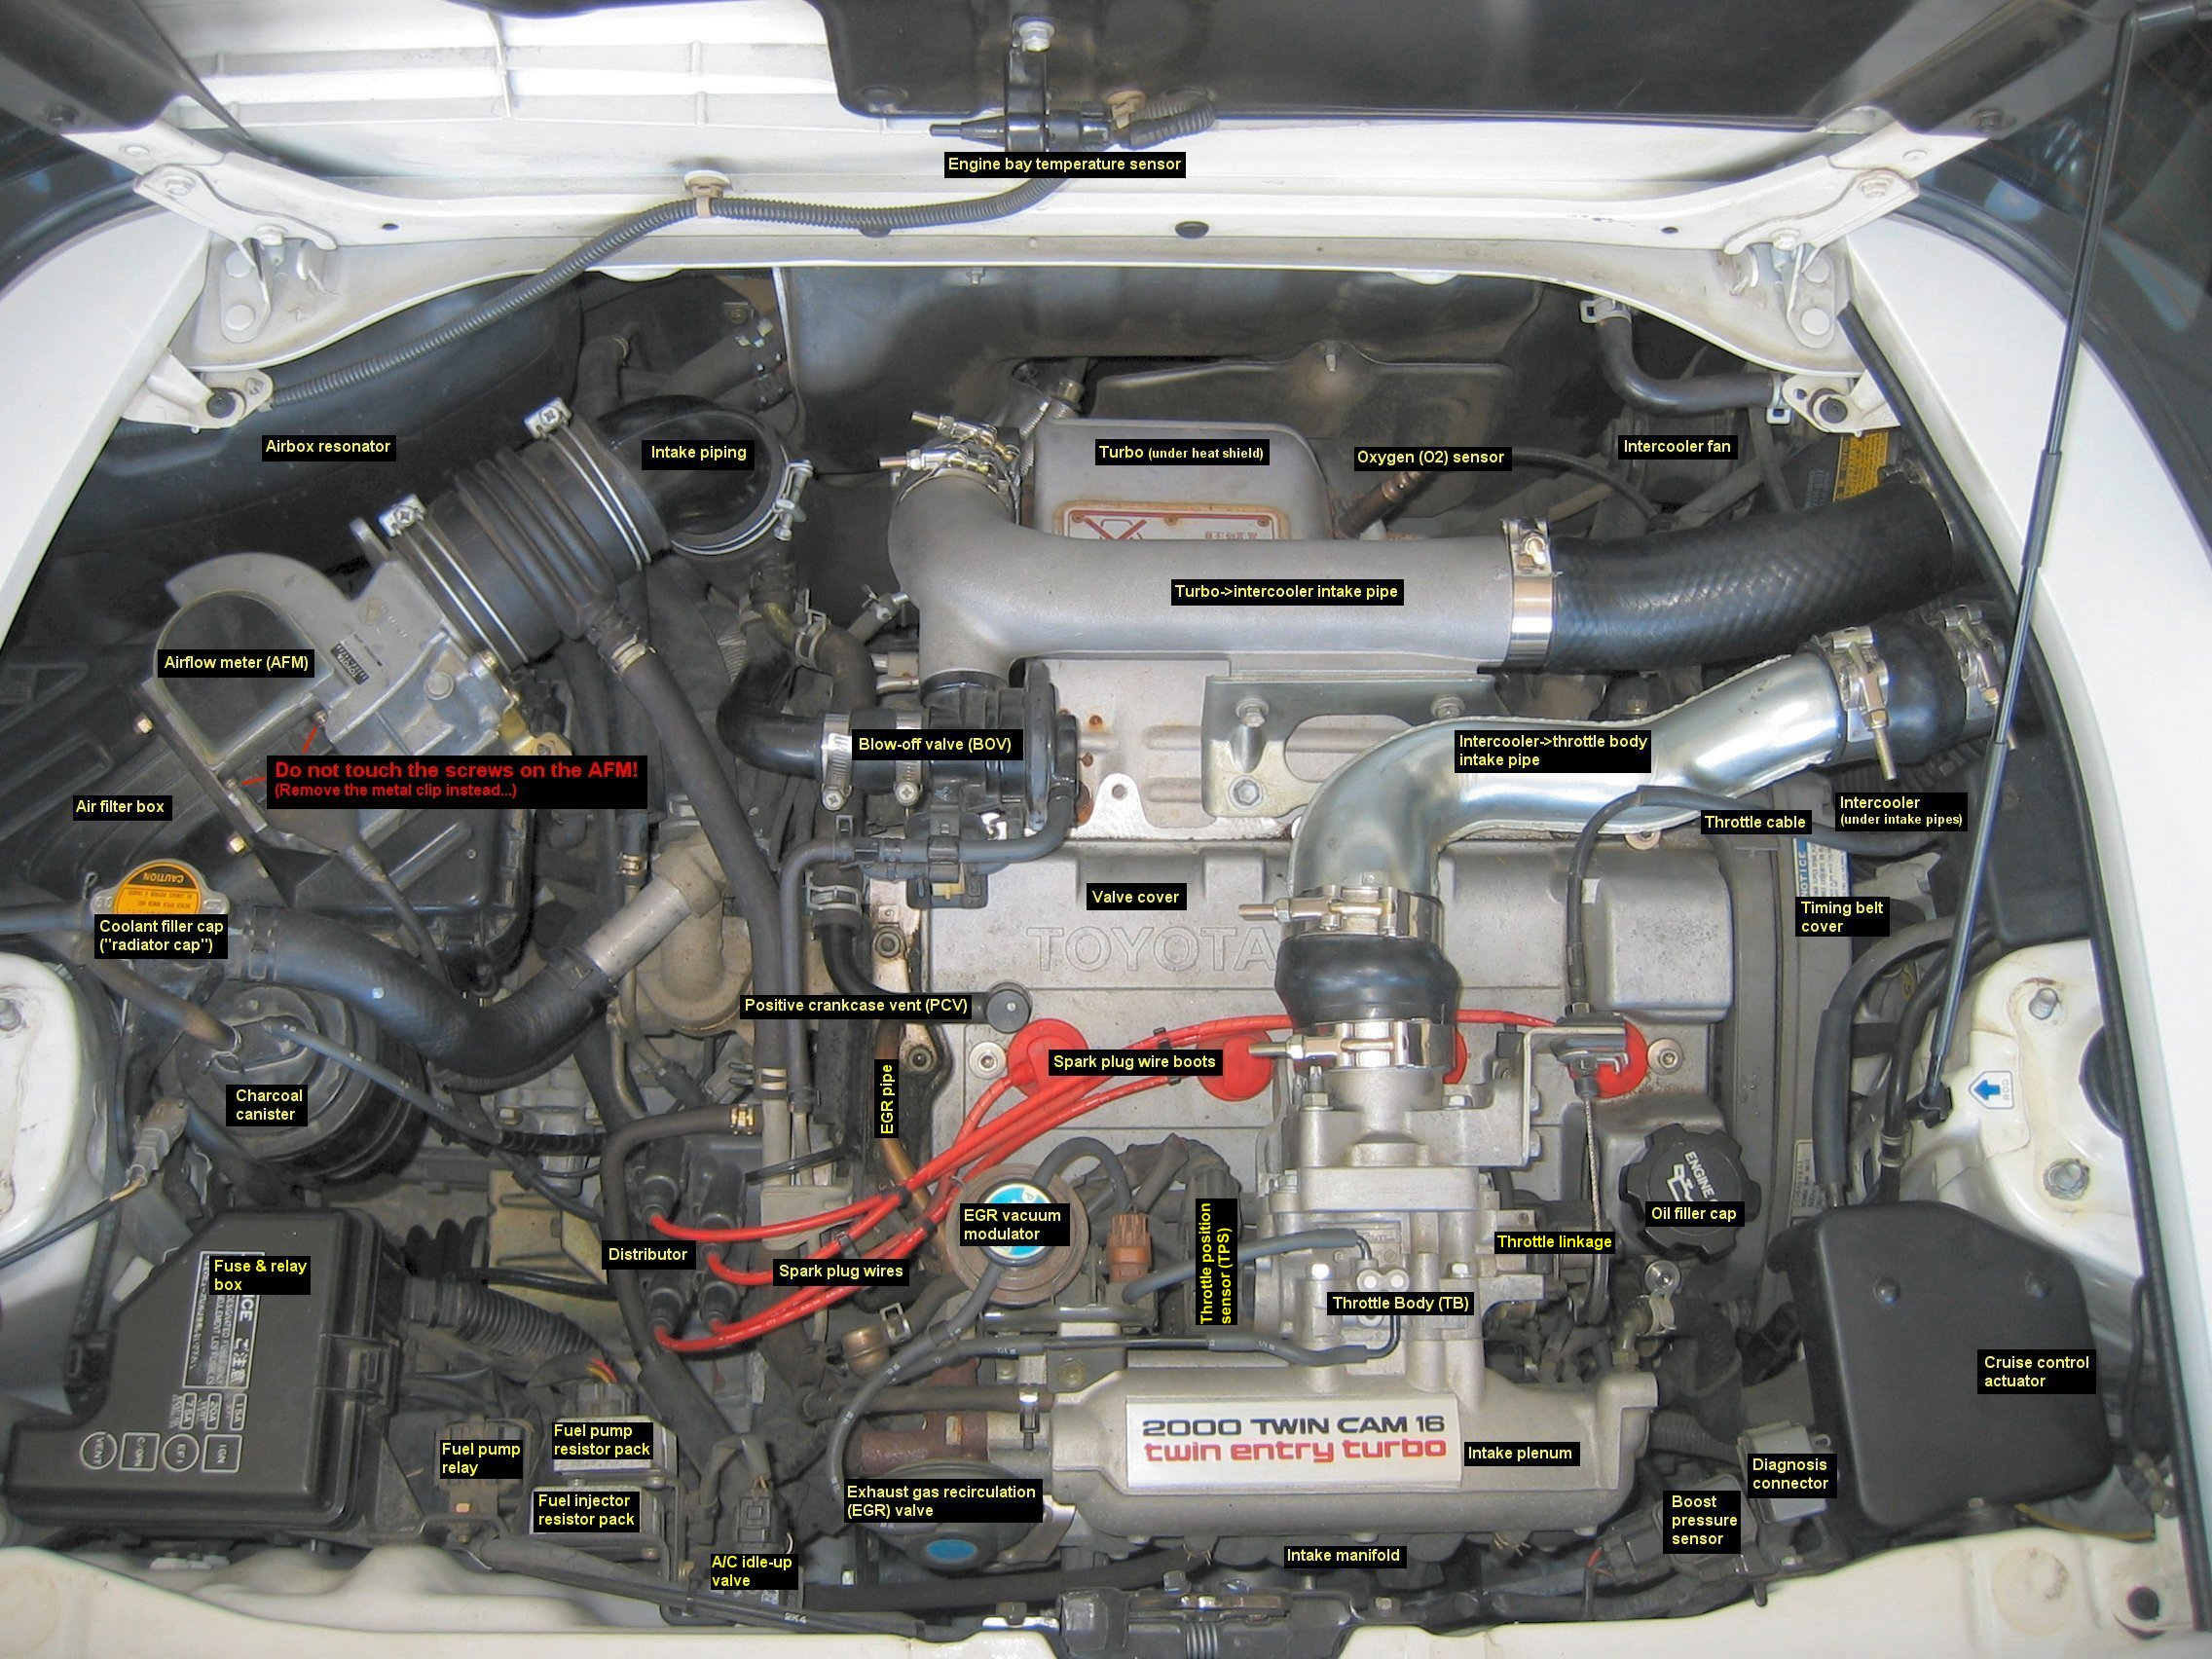 1991 Toyota Corolla Belt Diagram Real Wiring 2010 Engine 91 Mr2 Turbo Get Free Image About Drive Serpentine